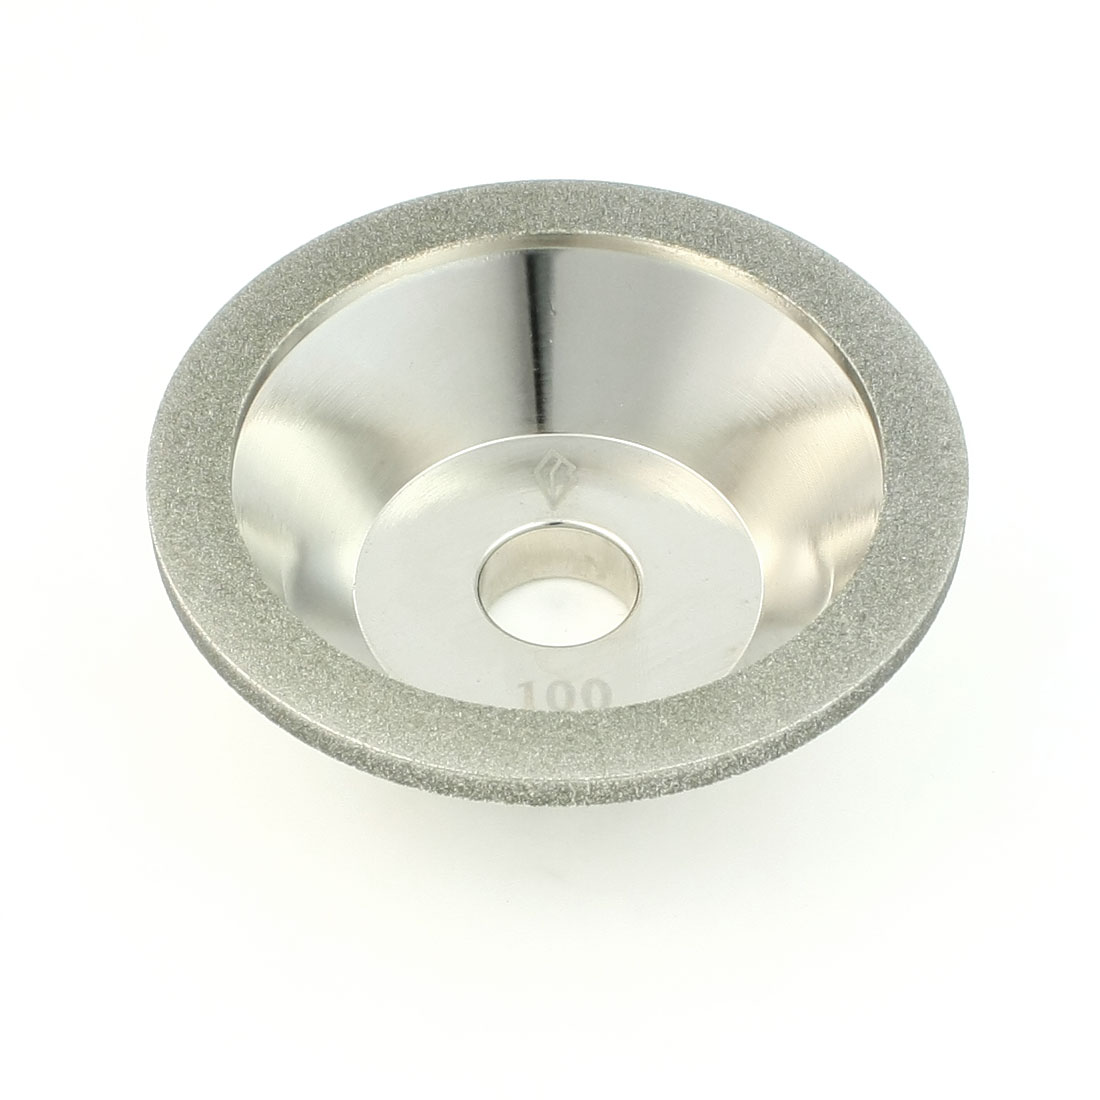 100mm OD 20mm Mout Hole 35mm Thick 100# Hardware Parts Diamond Grinding Wheel